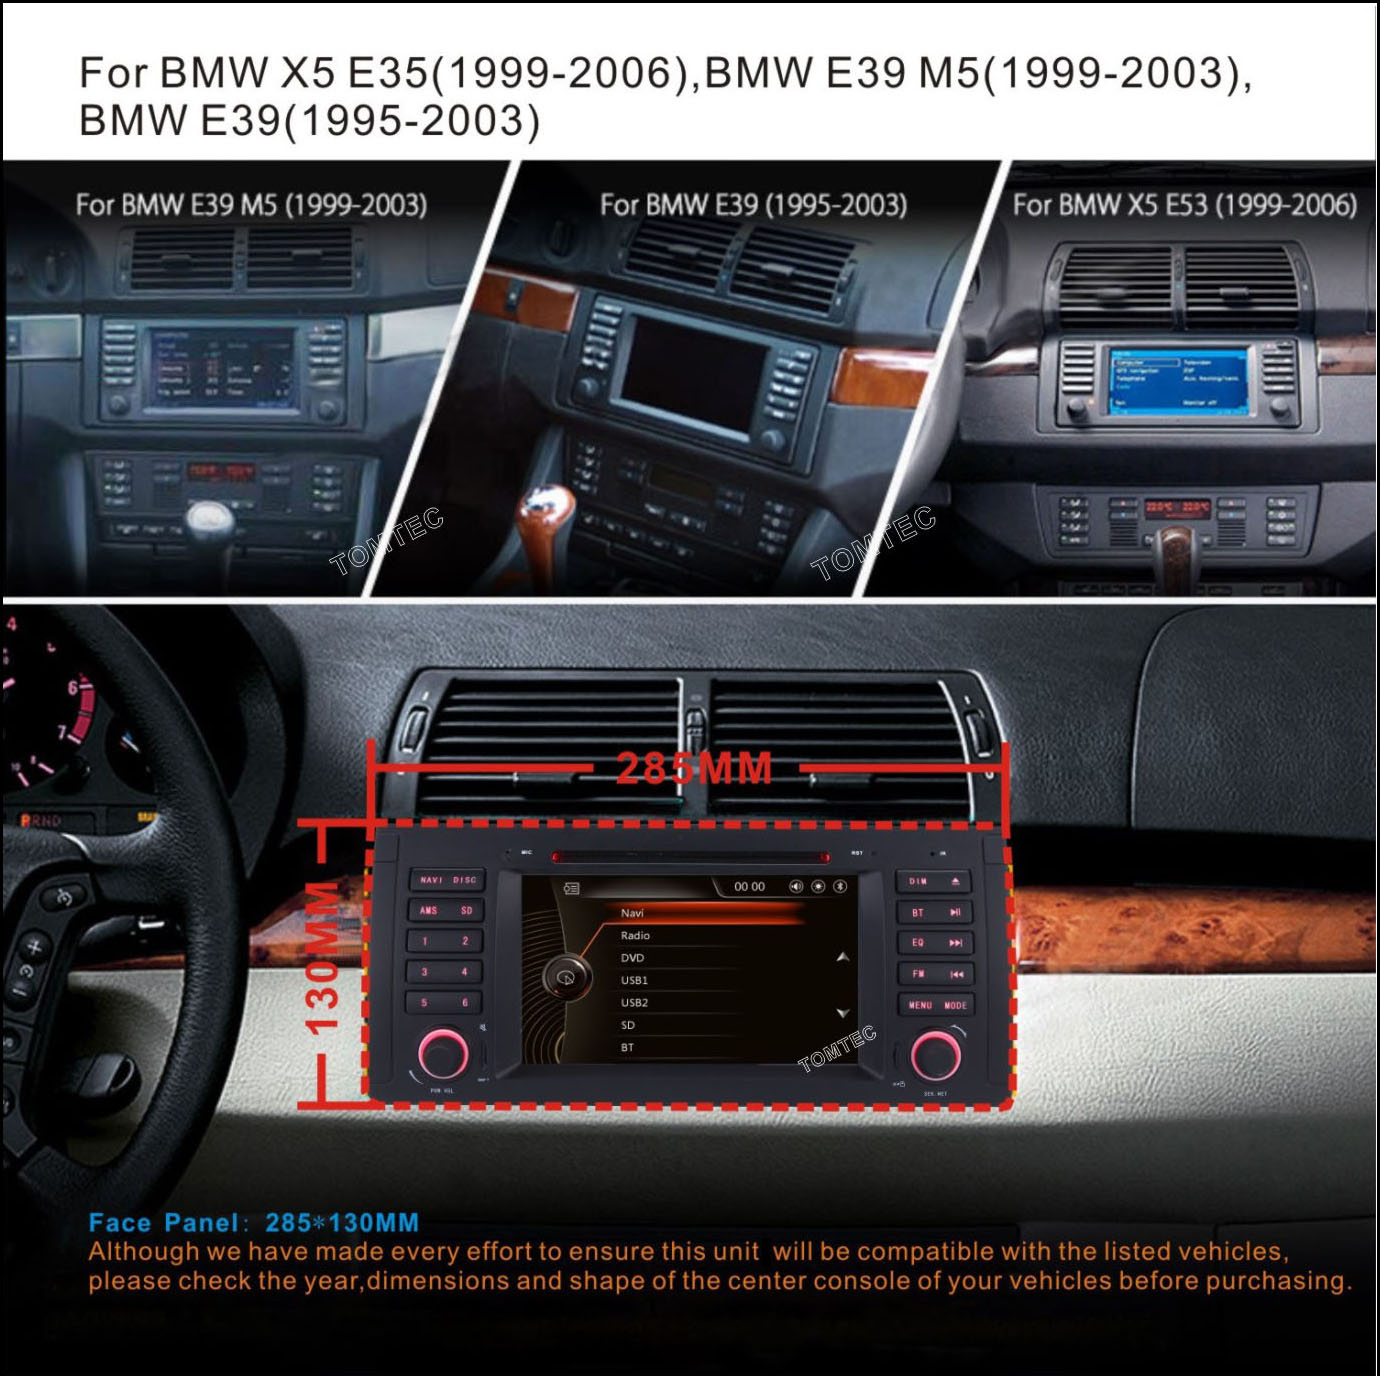 Bmw E39 M5 520 525 7 Car Radio Cd Dvd Player Stereo Bt Gps Sat Nav Wiring Diagram Rds Canbus